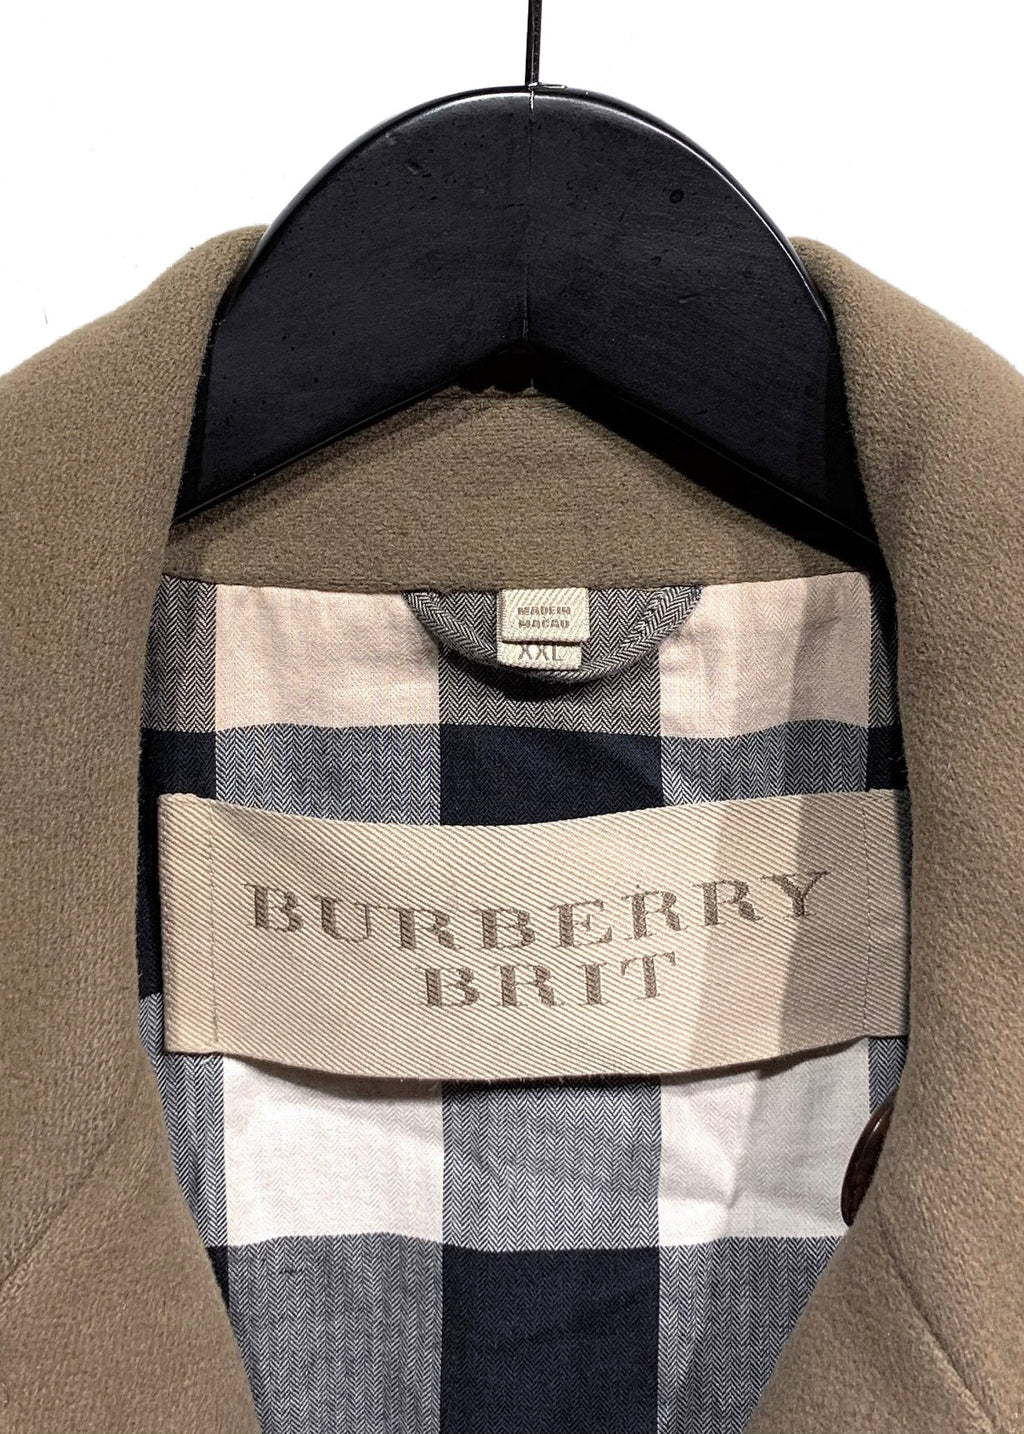 Burberry Brit Olive Green Double-Breasted Peacoat